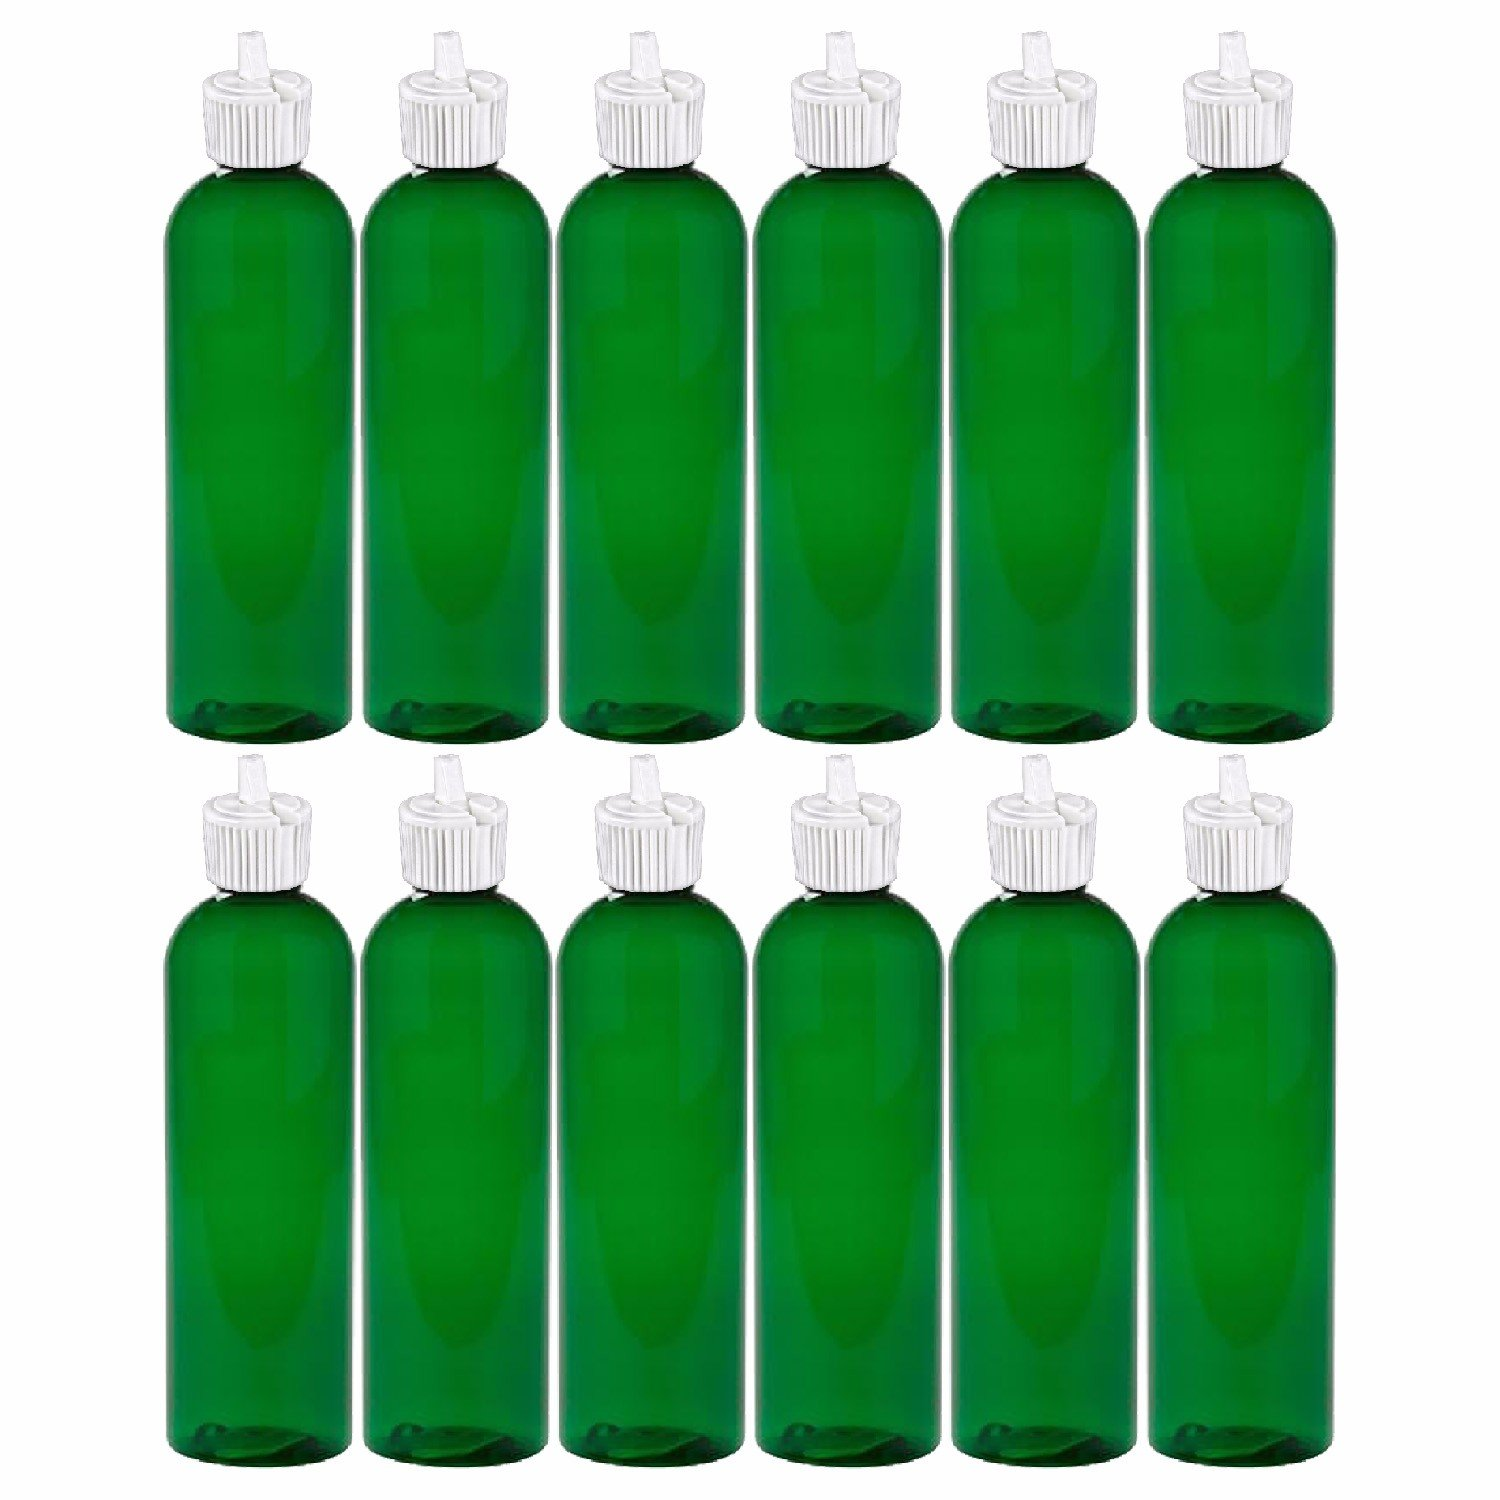 MoYo Natural Labs 4 oz Squirt Bottles, Squeezable Empty Travel Containers, BPA Free PET Plastic for Essential Oils and Liquids, Toiletry Cosmetic Bottles Neck 20-410 Pack of 12, Green